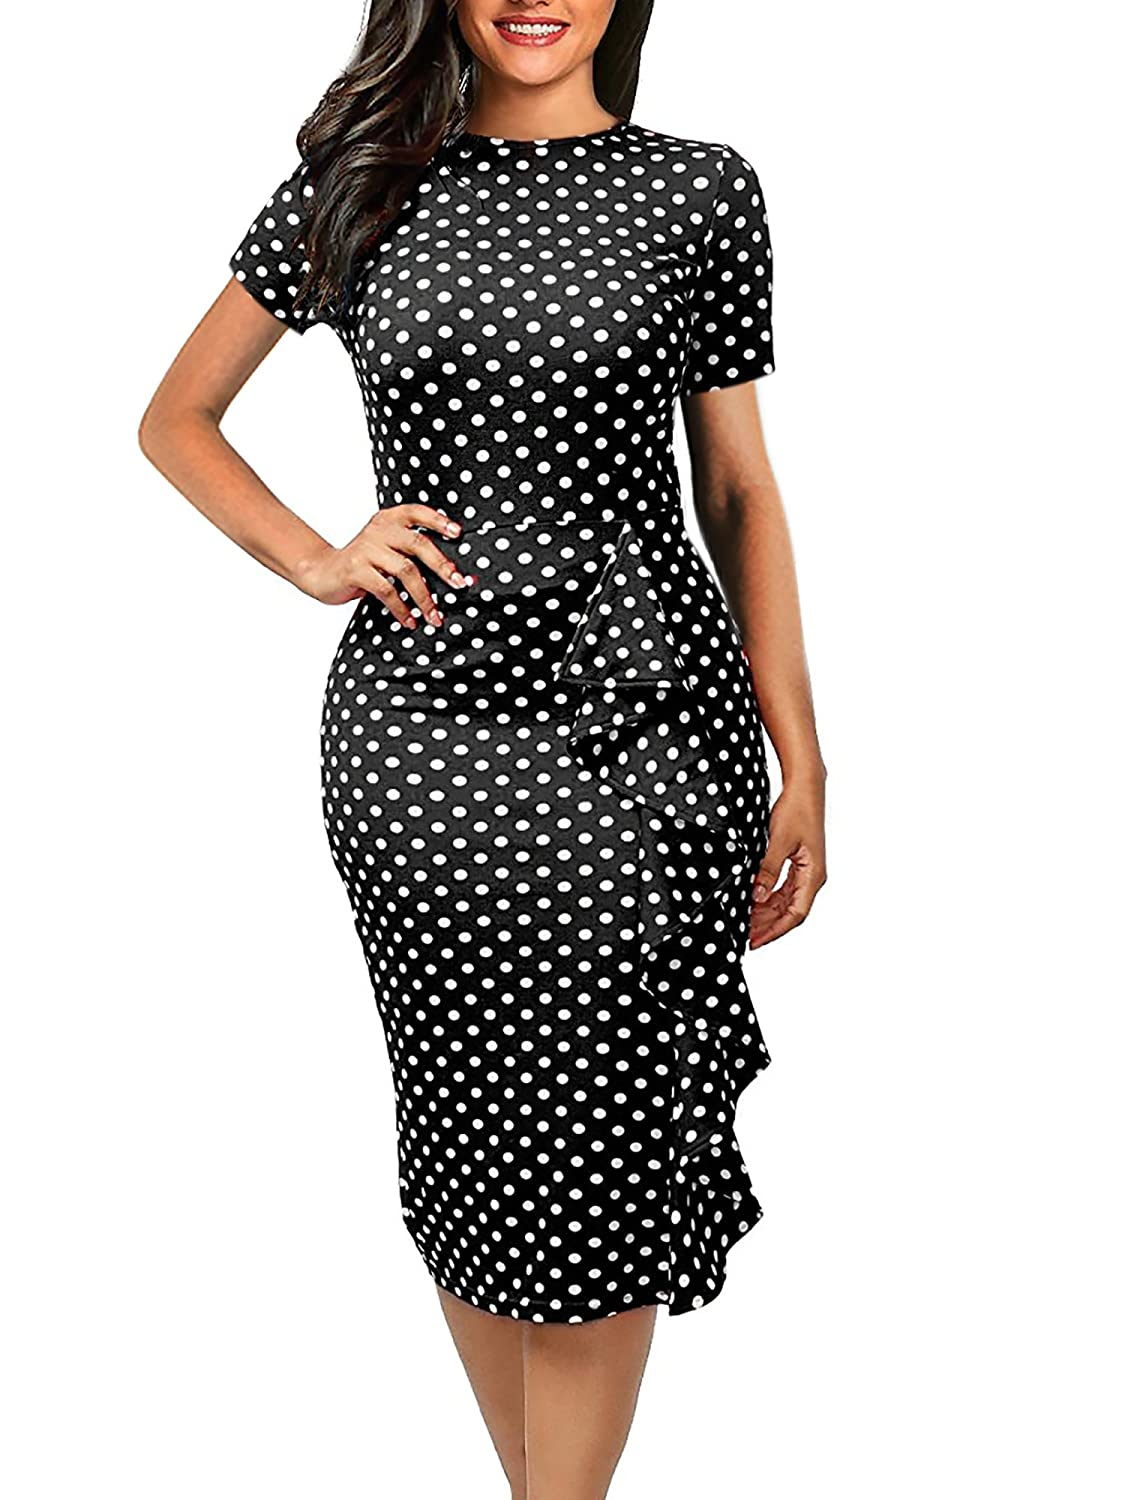 22019f2bc30 Women s Vintage Polka Dot Floral Round Neck Work Business Casual Stretchy  Bodycon Sheath Knee-length Pencil Dress Note Hand-wash and Machine  washable